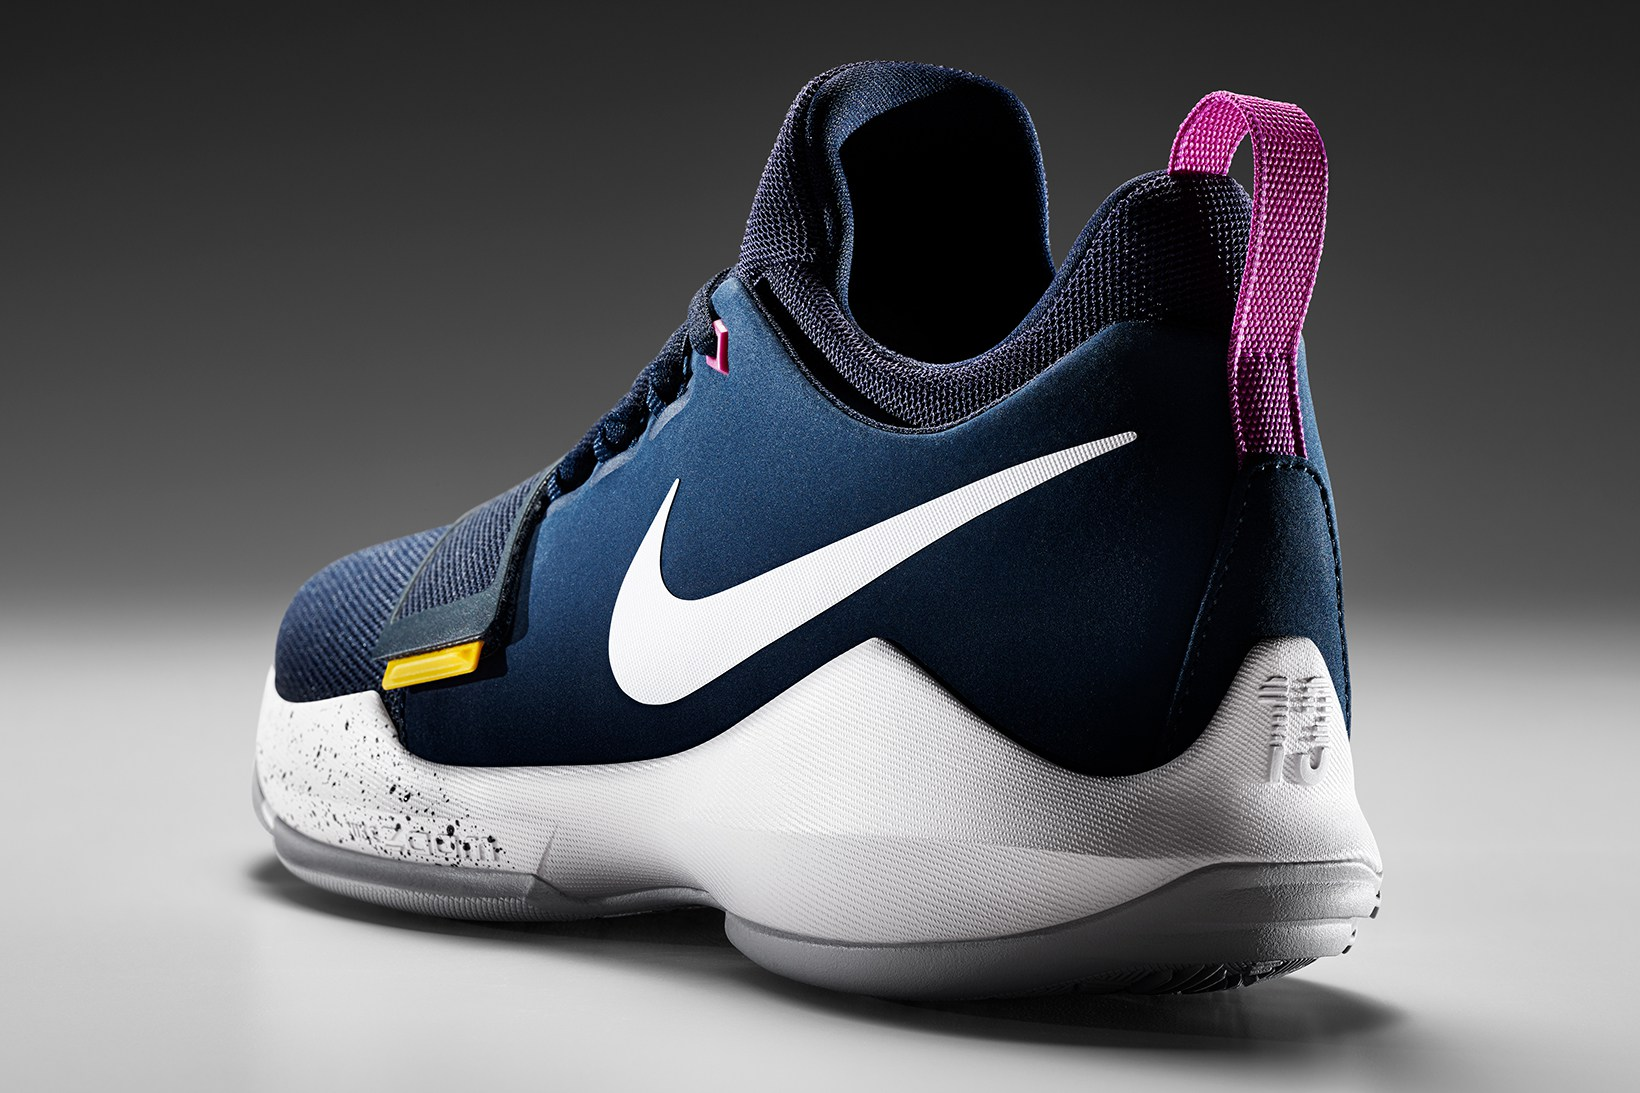 official-images-nike-pg1-2-2